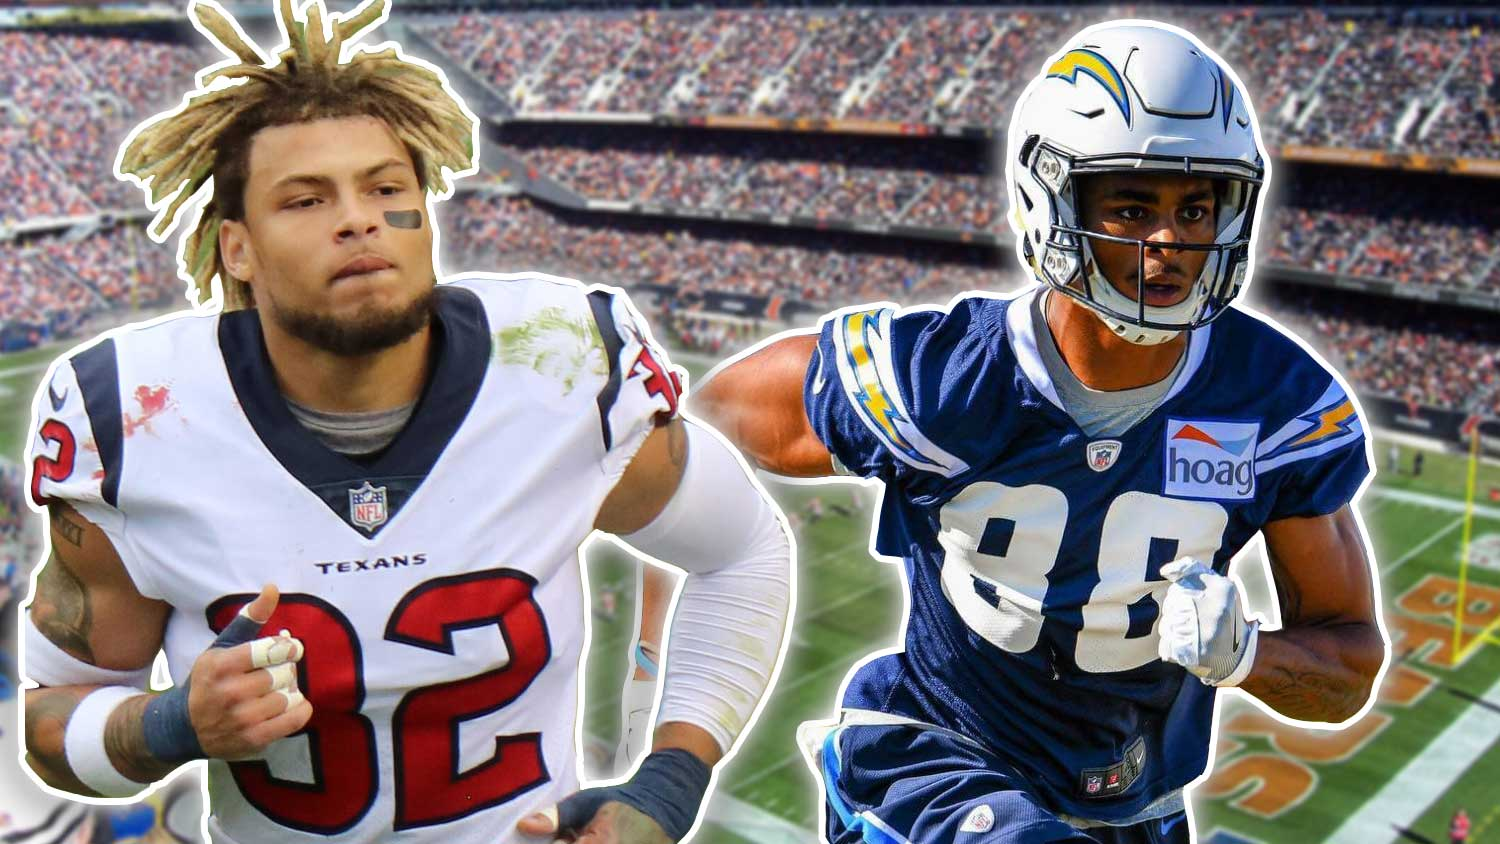 These 7 Vegan NFL Players Get Their Power From Plants